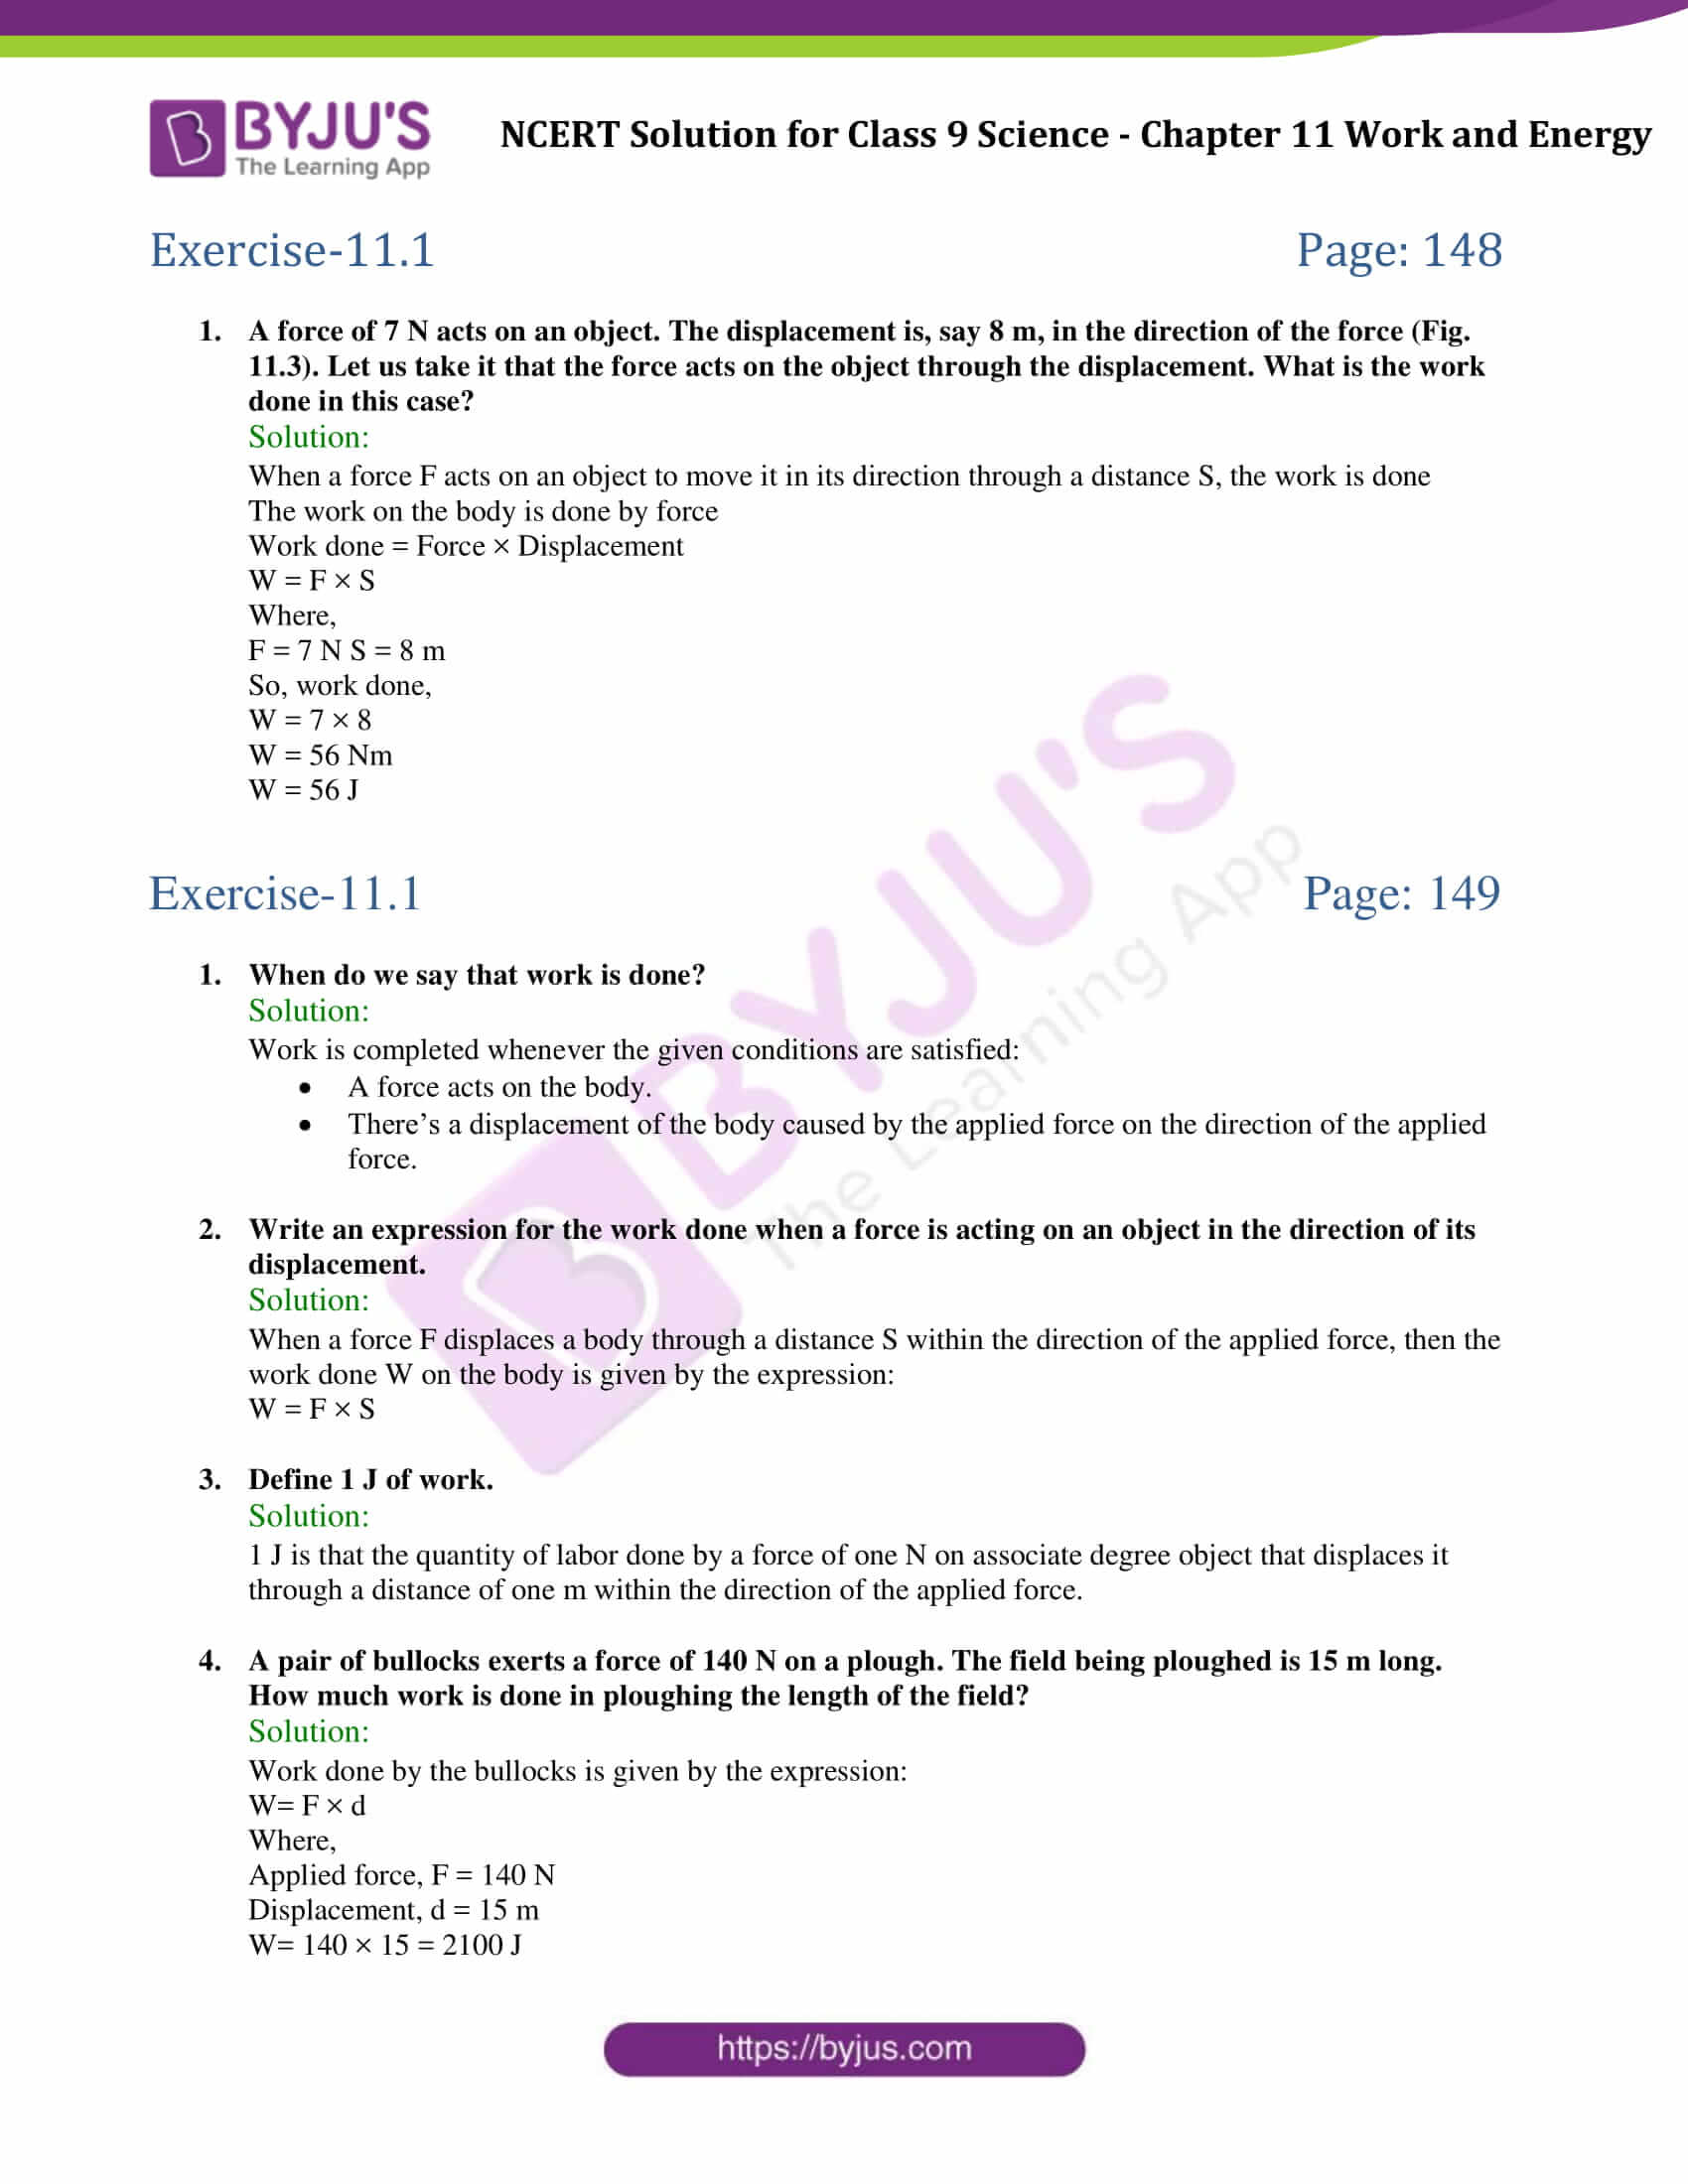 NCERT Solutions Class 9 Science Chapter 11 Work And Energy